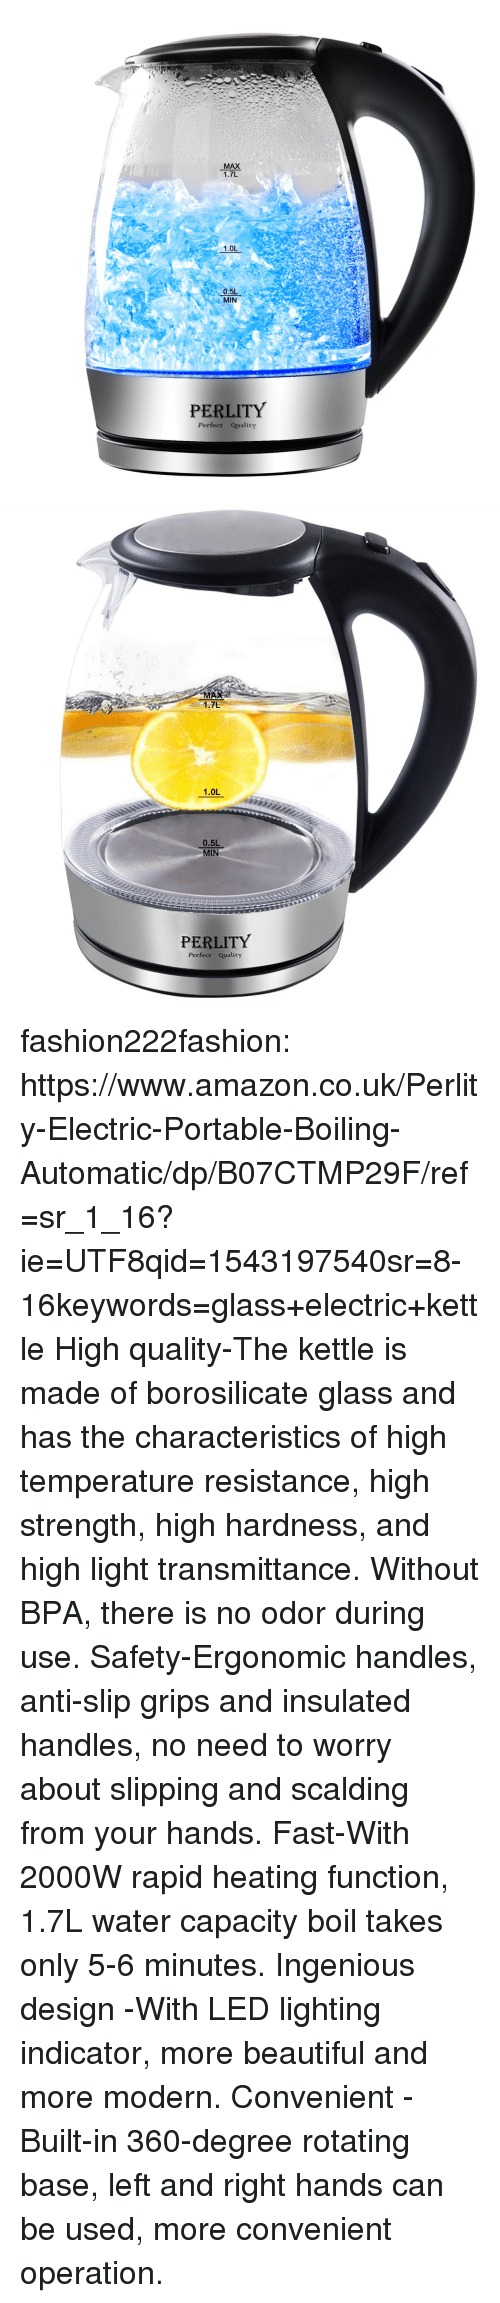 hardness: MAX  1.7L  1.0L  0.5L  MIN  PERLITY  Perfect Quality   MA  1.7L  1.0L  0.5L  MIN  PERLITY  Perfect Qualicy fashion222fashion: https://www.amazon.co.uk/Perlity-Electric-Portable-Boiling-Automatic/dp/B07CTMP29F/ref=sr_1_16?ie=UTF8qid=1543197540sr=8-16keywords=glass+electric+kettle   High quality-The kettle is made of borosilicate glass and has the characteristics of high temperature resistance, high strength, high hardness, and high light transmittance. Without BPA, there is no odor during use. Safety-Ergonomic handles, anti-slip grips and insulated handles, no need to worry about slipping and scalding from your hands. Fast-With 2000W rapid heating function, 1.7L water capacity boil takes only 5-6 minutes. Ingenious design -With LED lighting indicator, more beautiful and more modern. Convenient -Built-in 360-degree rotating base, left and right hands can be used, more convenient operation.